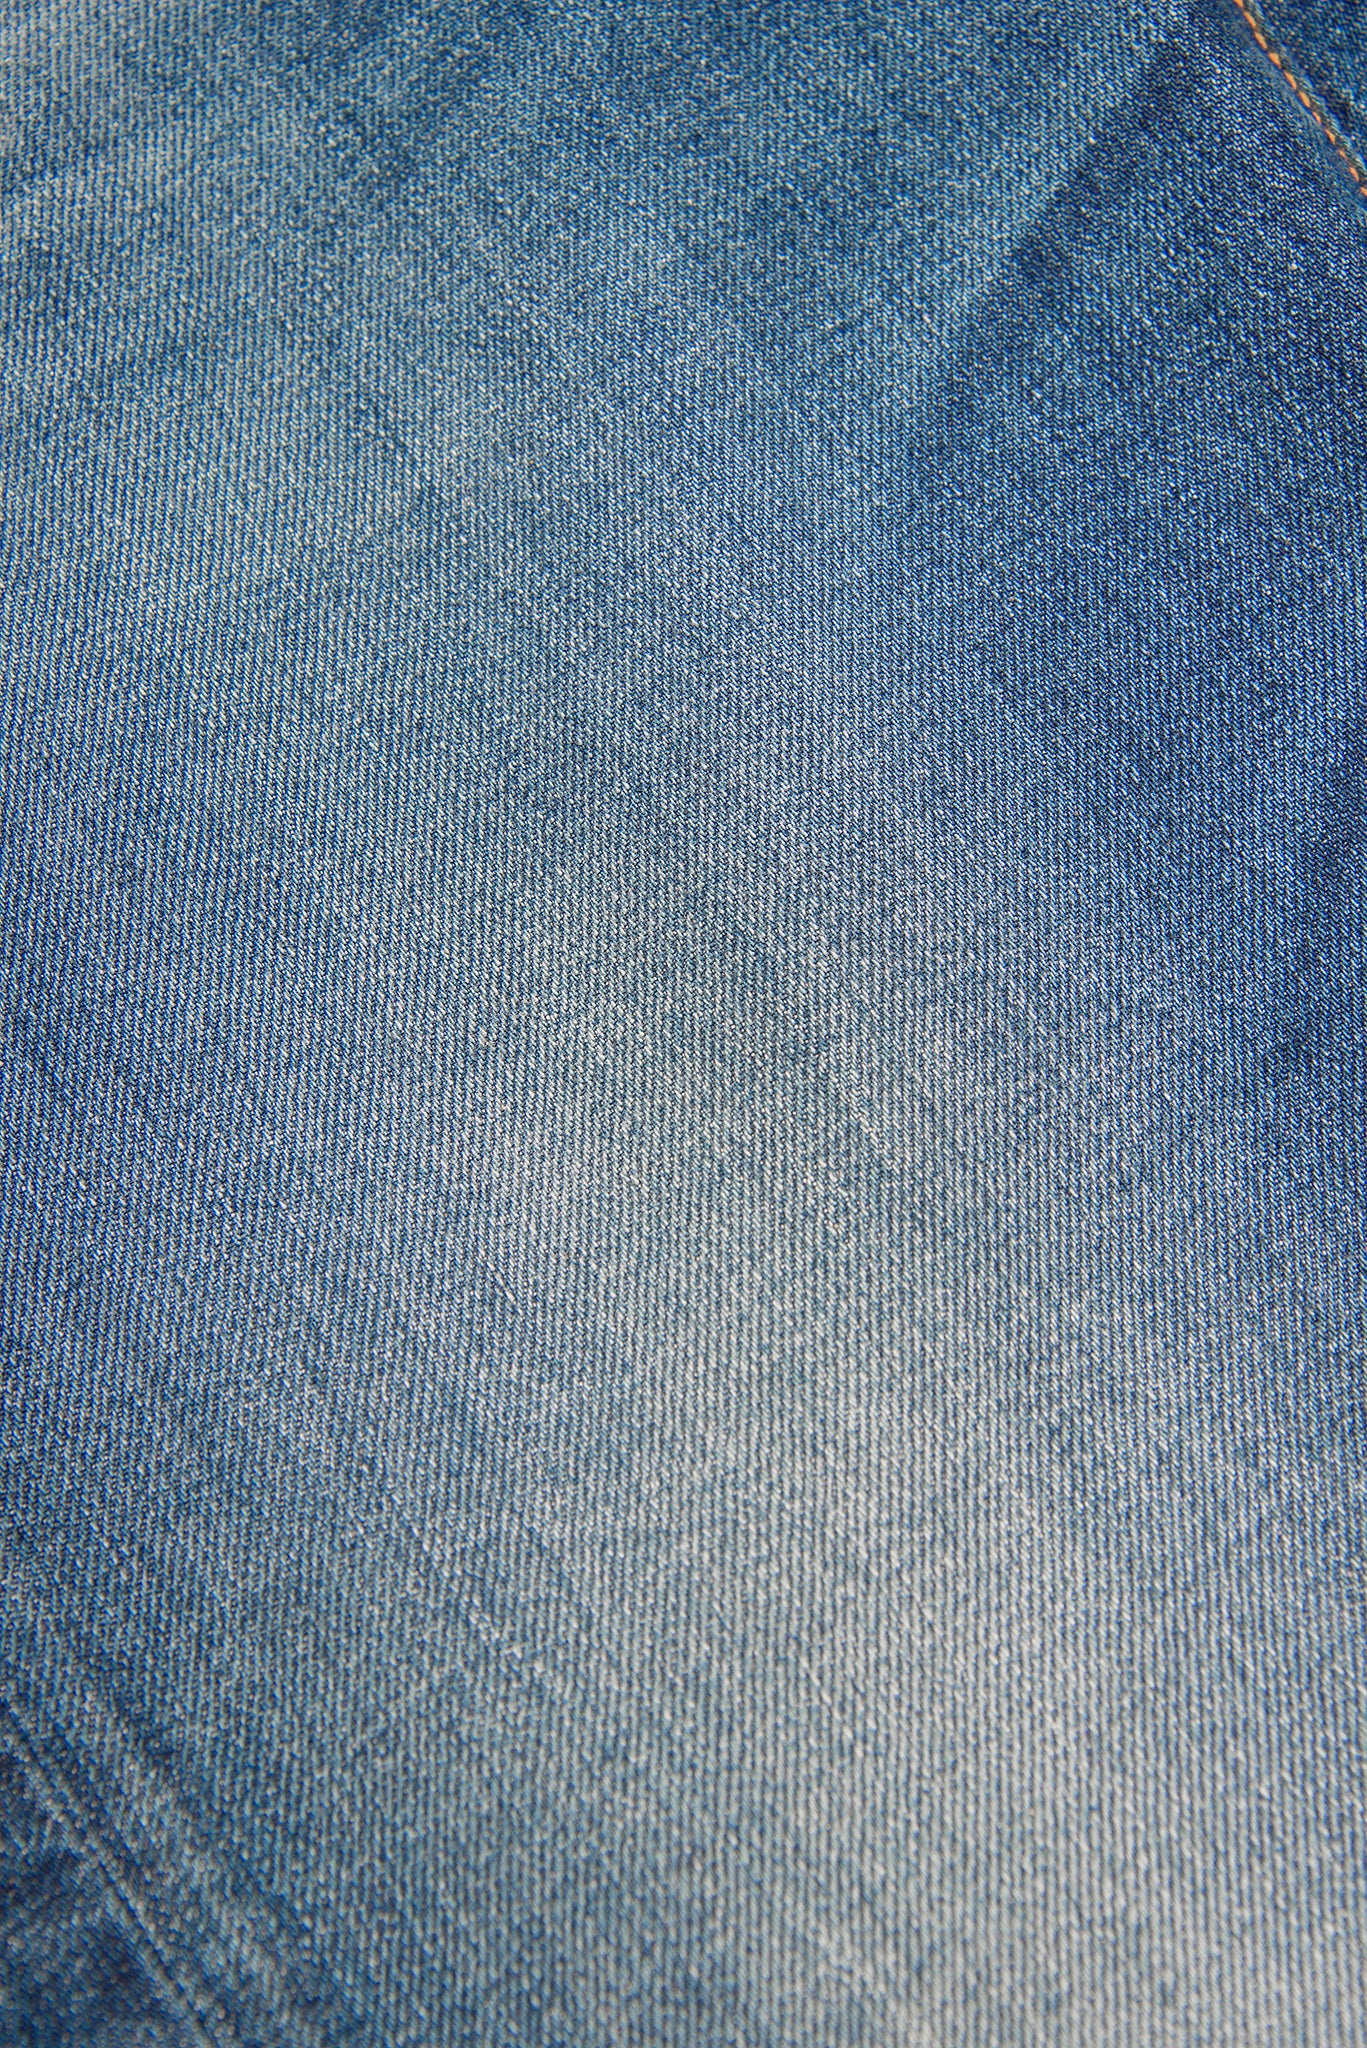 Aloi denim (sky blue no scratches)